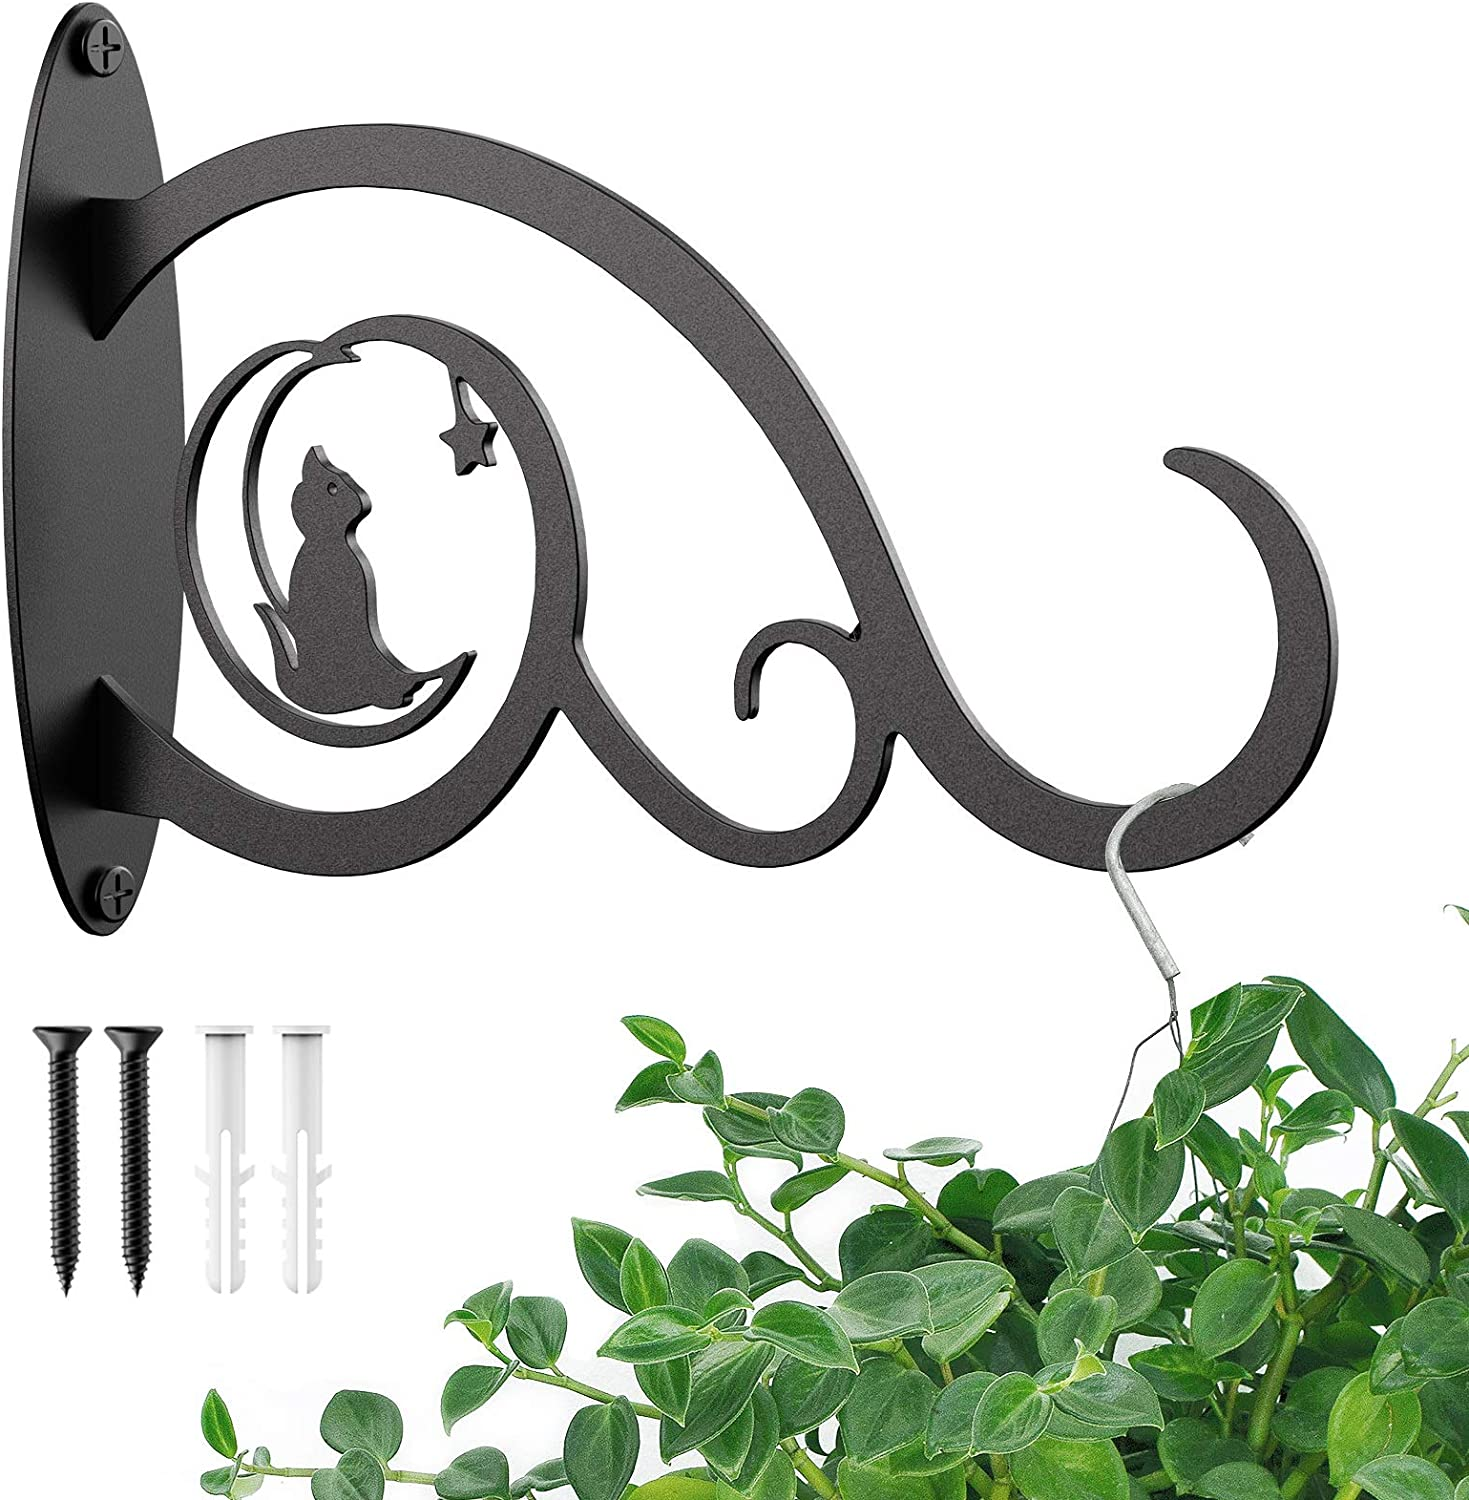 10 inch Hanging Plant Bracket, Decorative Plants Hangers Outdoor, Premium Iron Wall Hooks for Hanging Bird Feeder, Lanterns, Wind Chimes, String Lights, Sturdy and Install Easily, by Wanaspo, Black